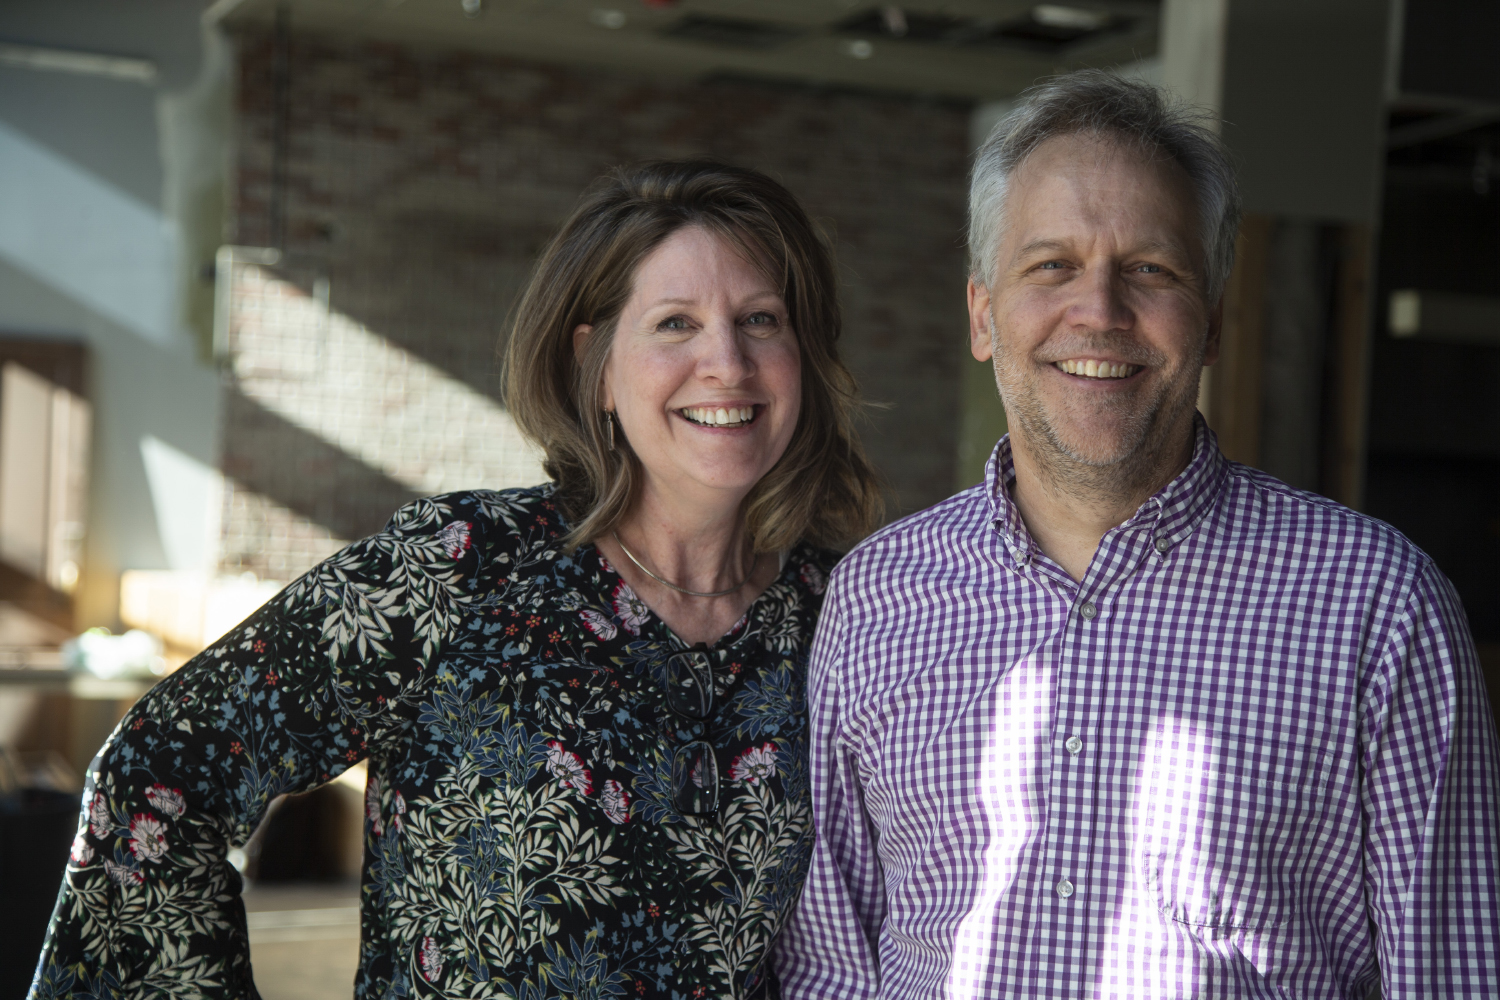 Owners Susan and Kevin Felker stand in the space that will become Prairie Kitchen on Wednesday, August 28, 2019. Prairie Kitchen is set to open in the spring of 2020. (Jenna Galligan/The Daily Iowan)